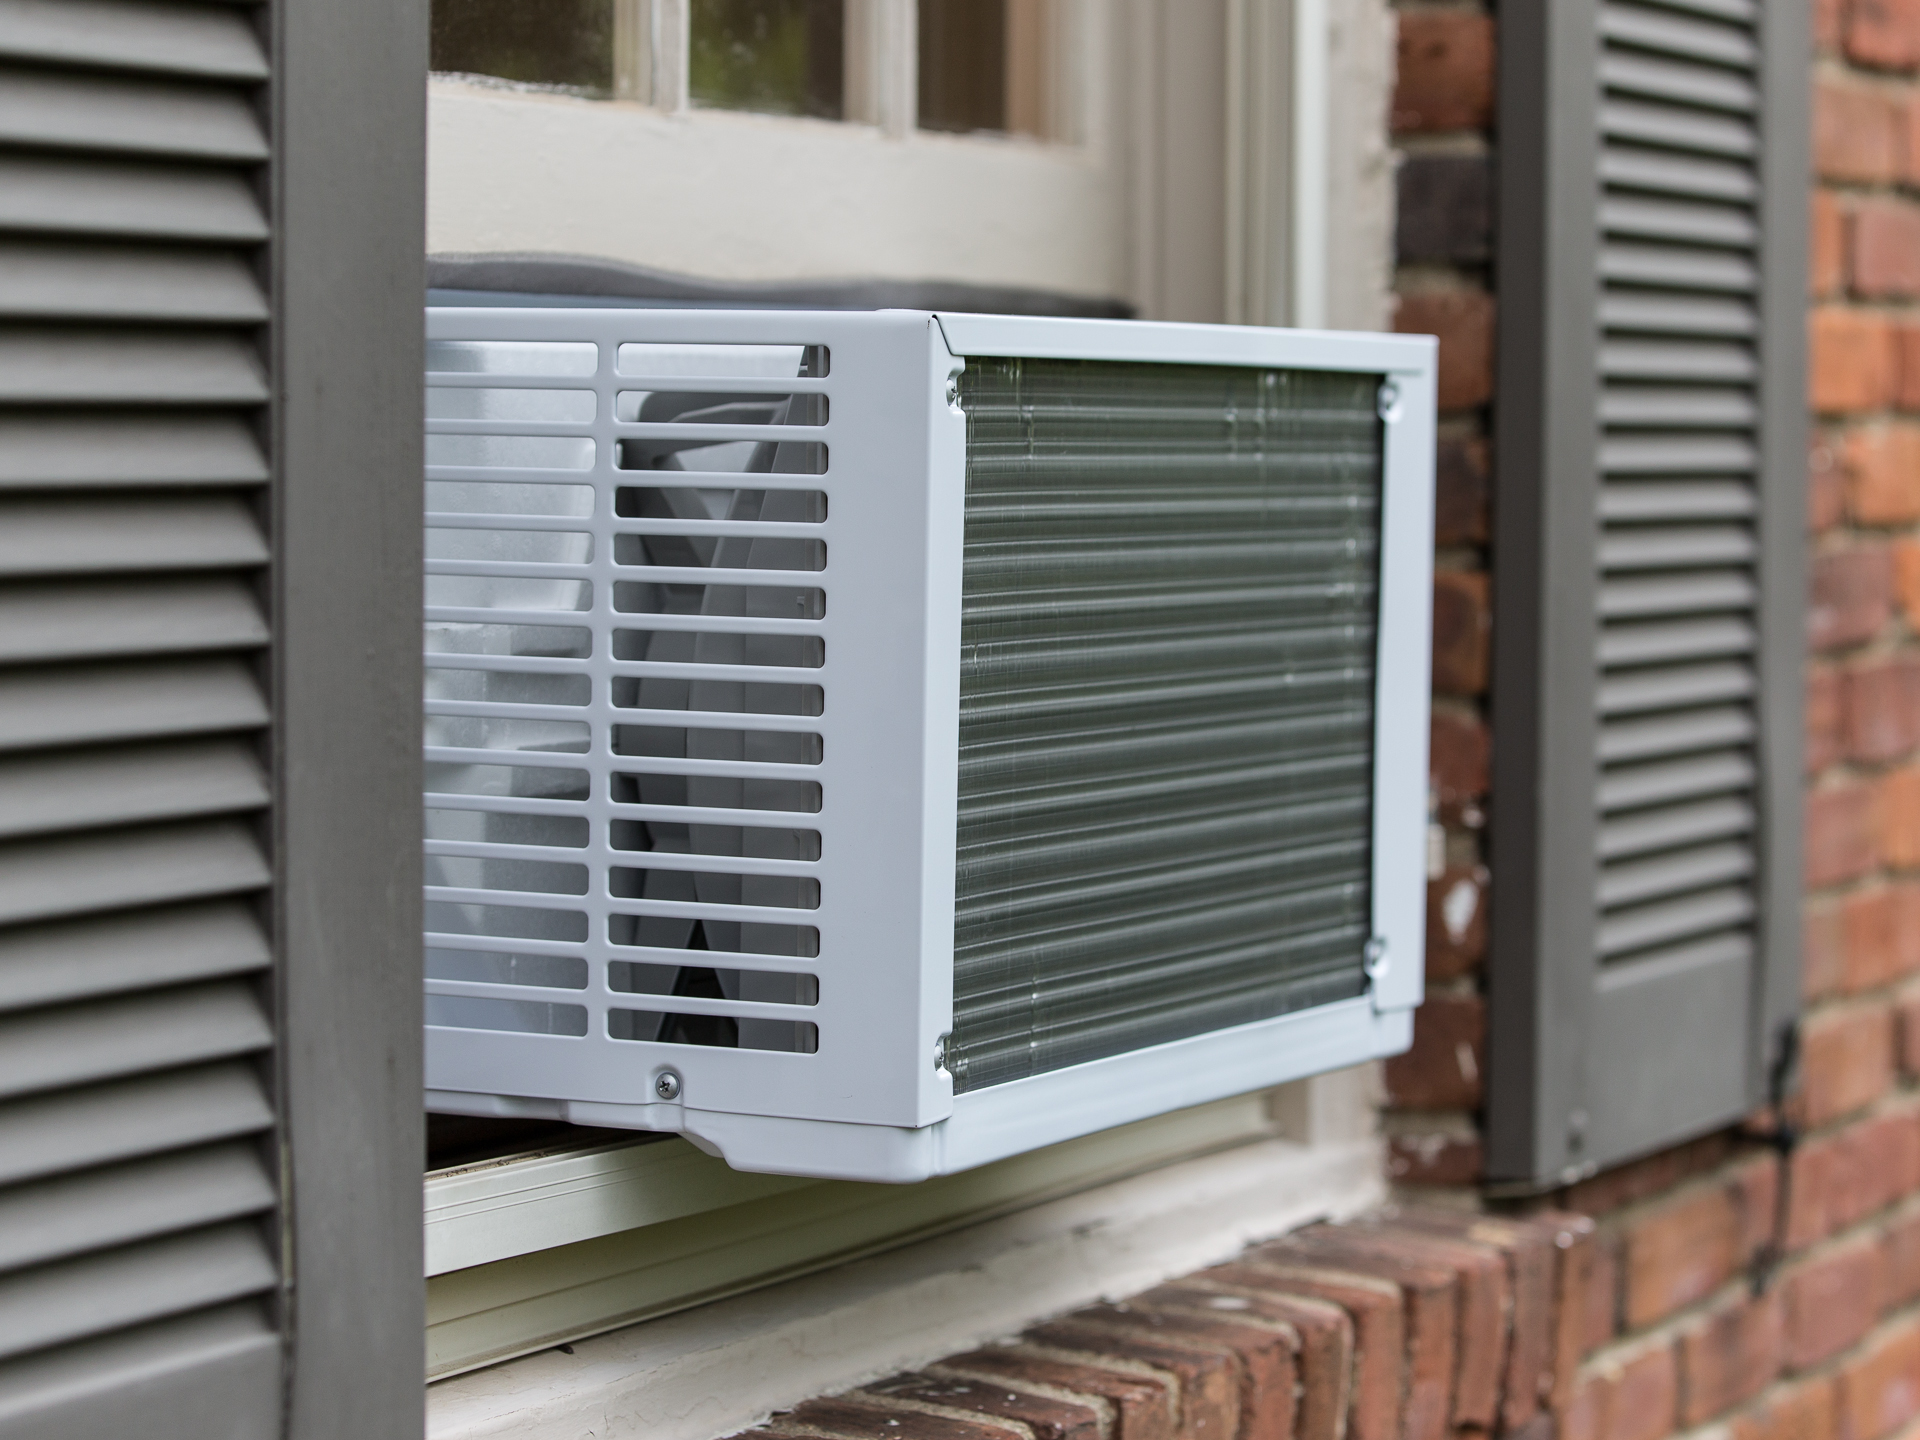 Quirky Ge Aros Smart Air Conditioner Review Cnet